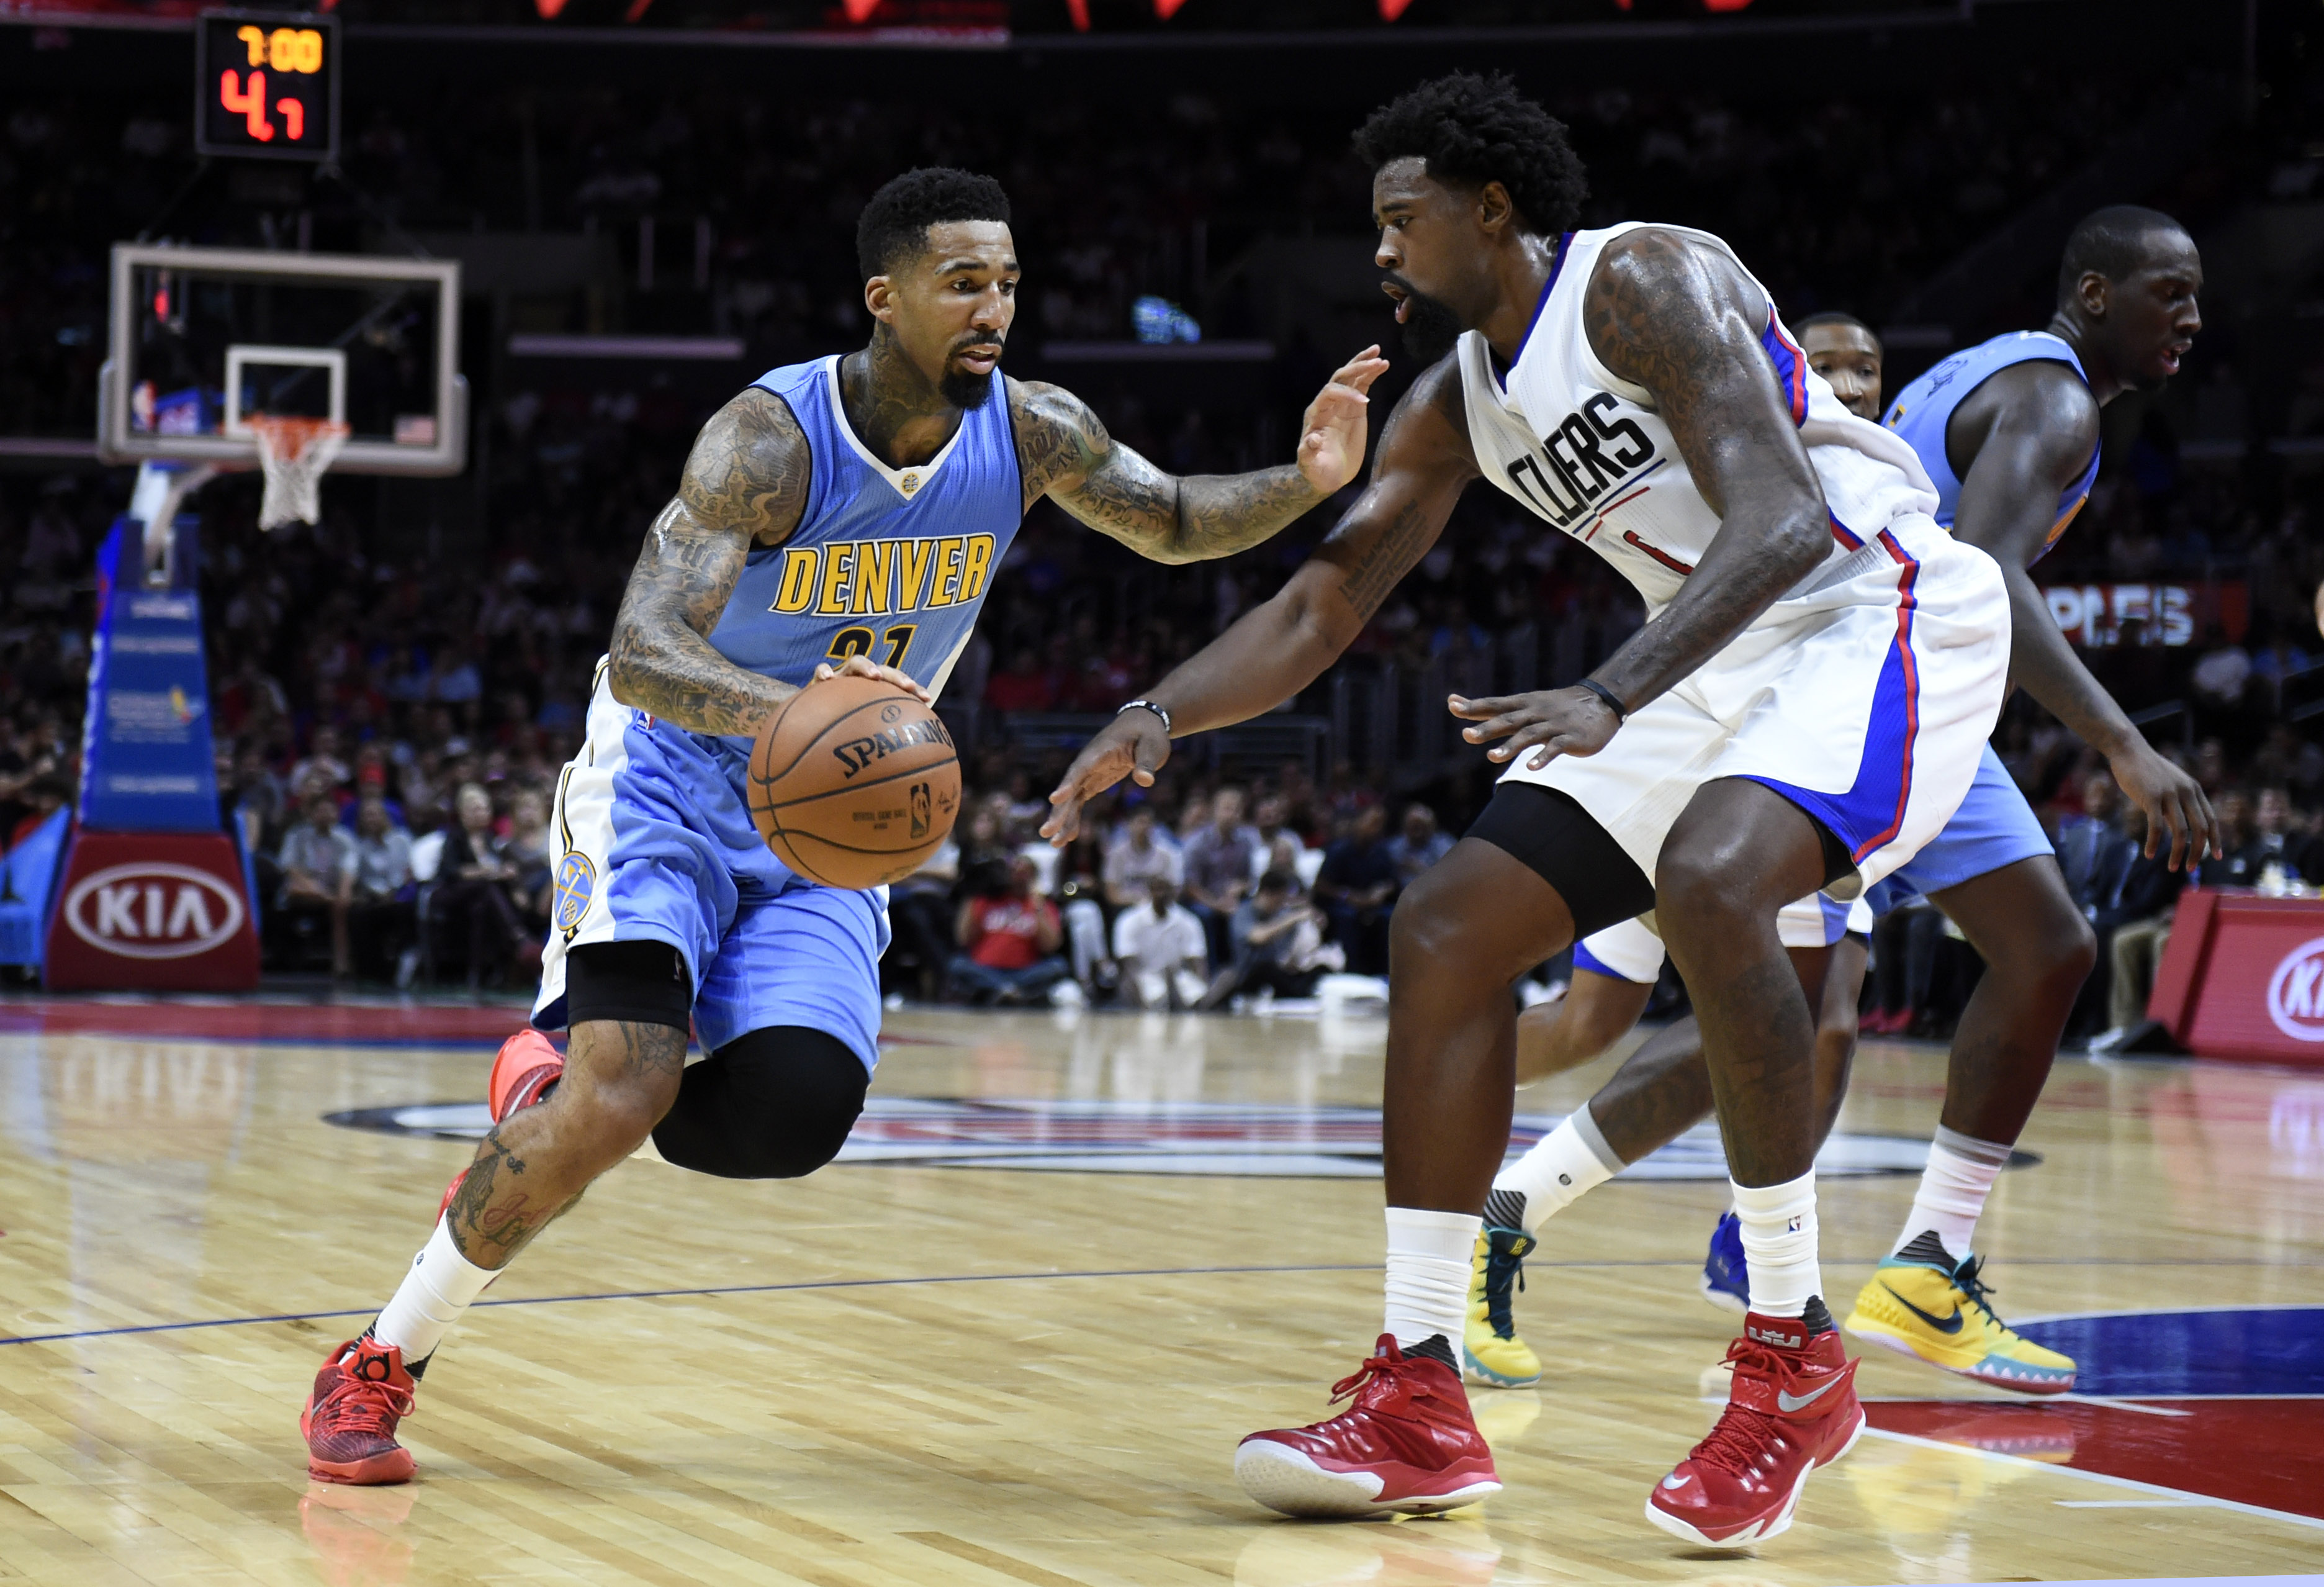 Denver Nuggets 2015 roster: Focus on young players as Mike Malone tenure begins